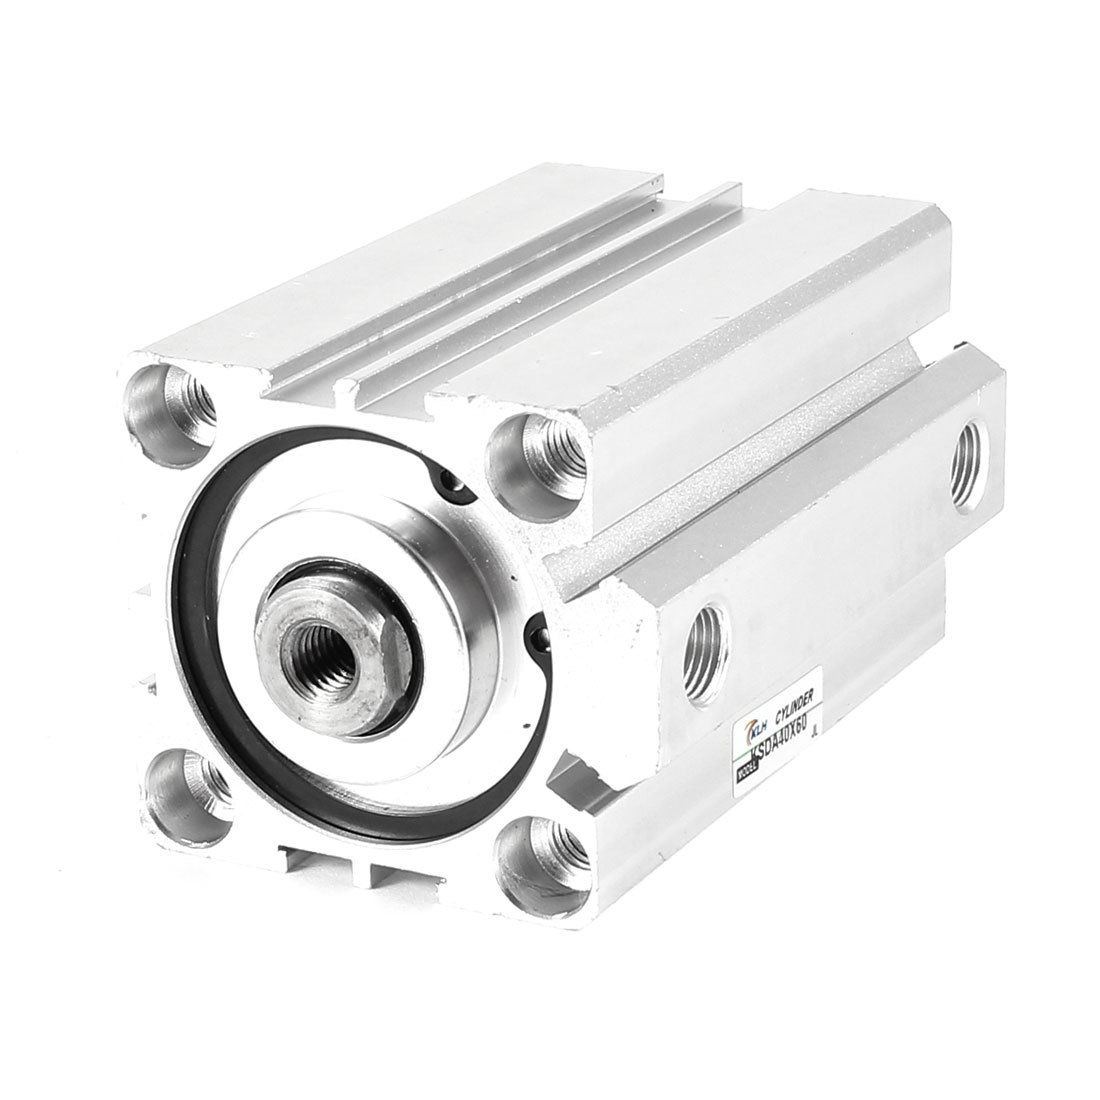 1 Pcs 50mm Bore 60mm Stroke Stainless steel Pneumatic Air Cylinder SDA50-60 1 pcs 50mm bore 25mm stroke stainless steel pneumatic air cylinder sda50 25